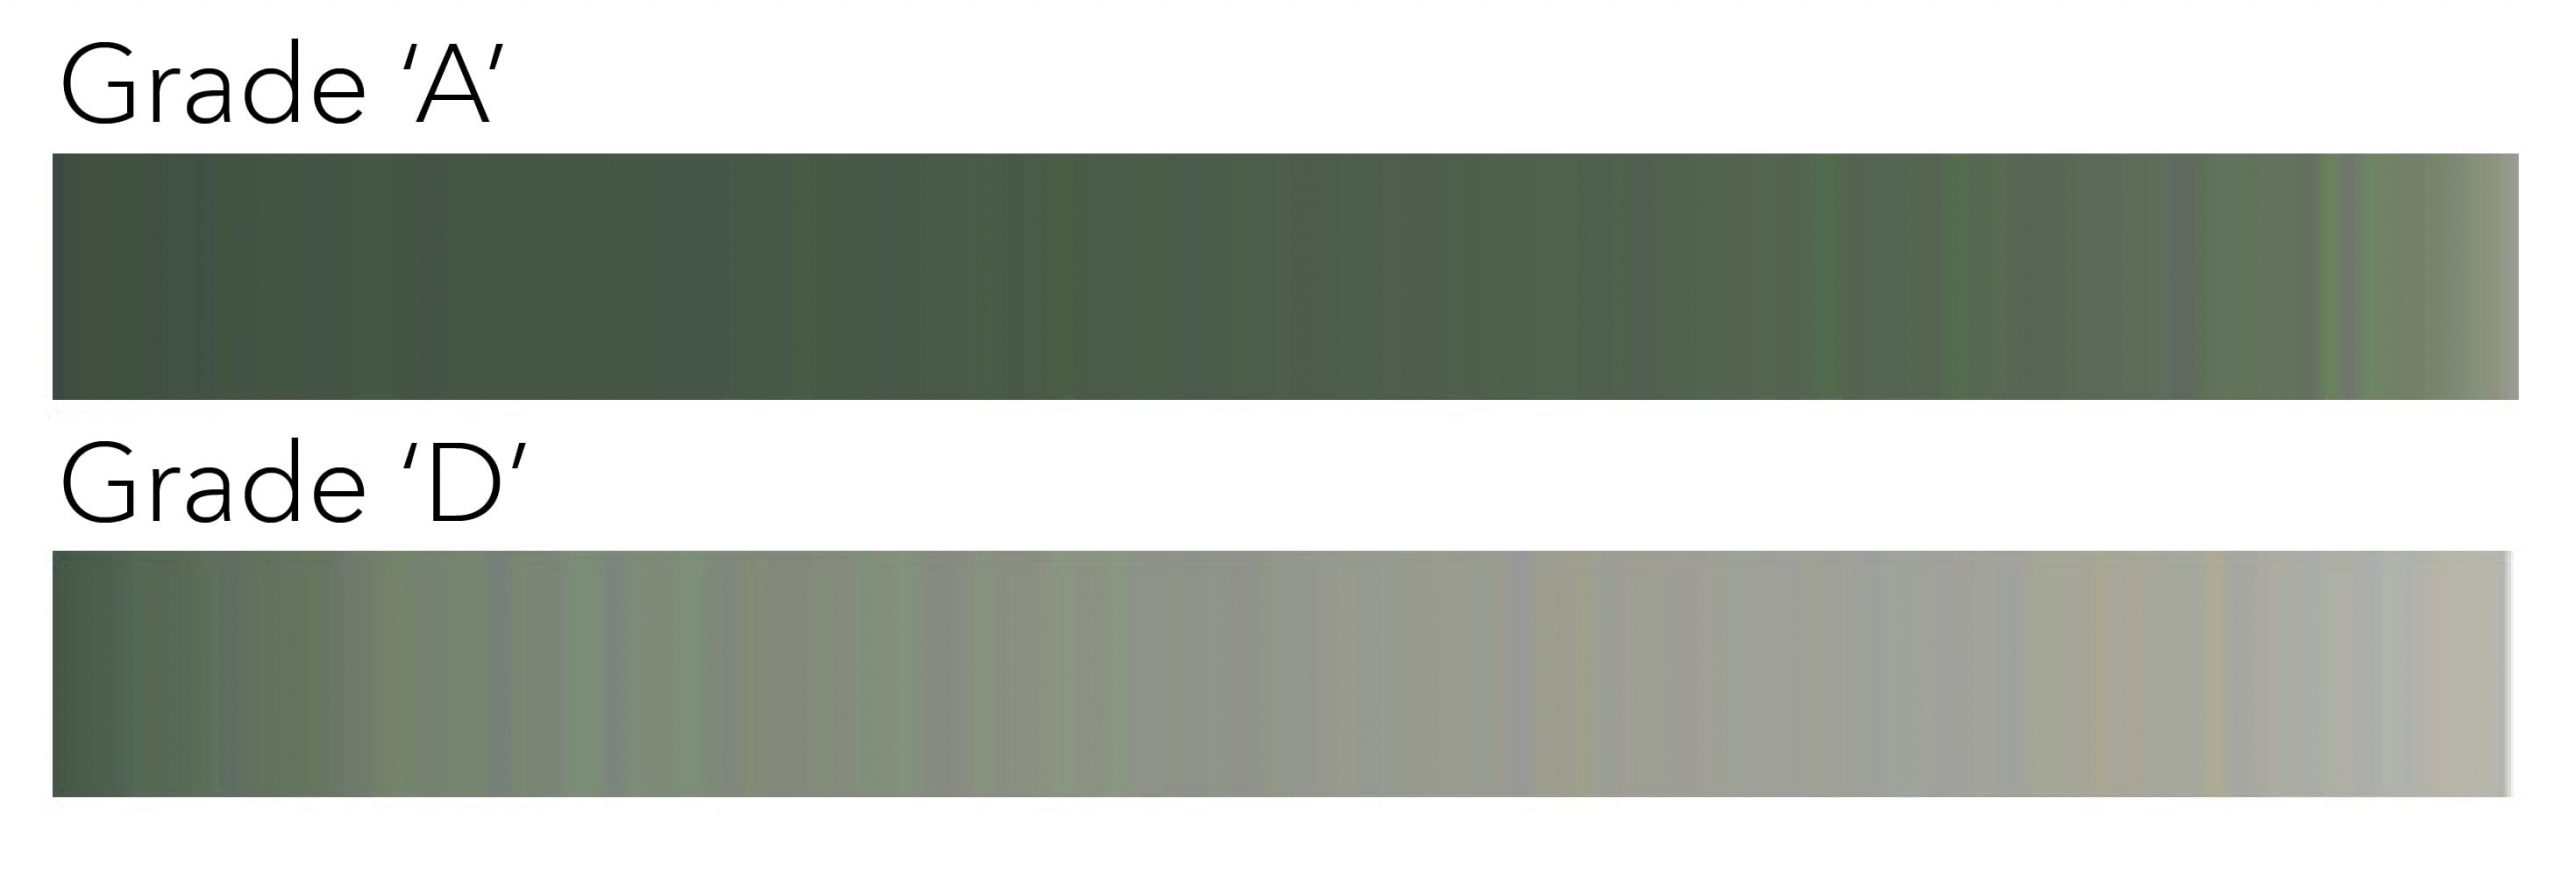 Palettes created from the average mean RGB value and ranked by brightness